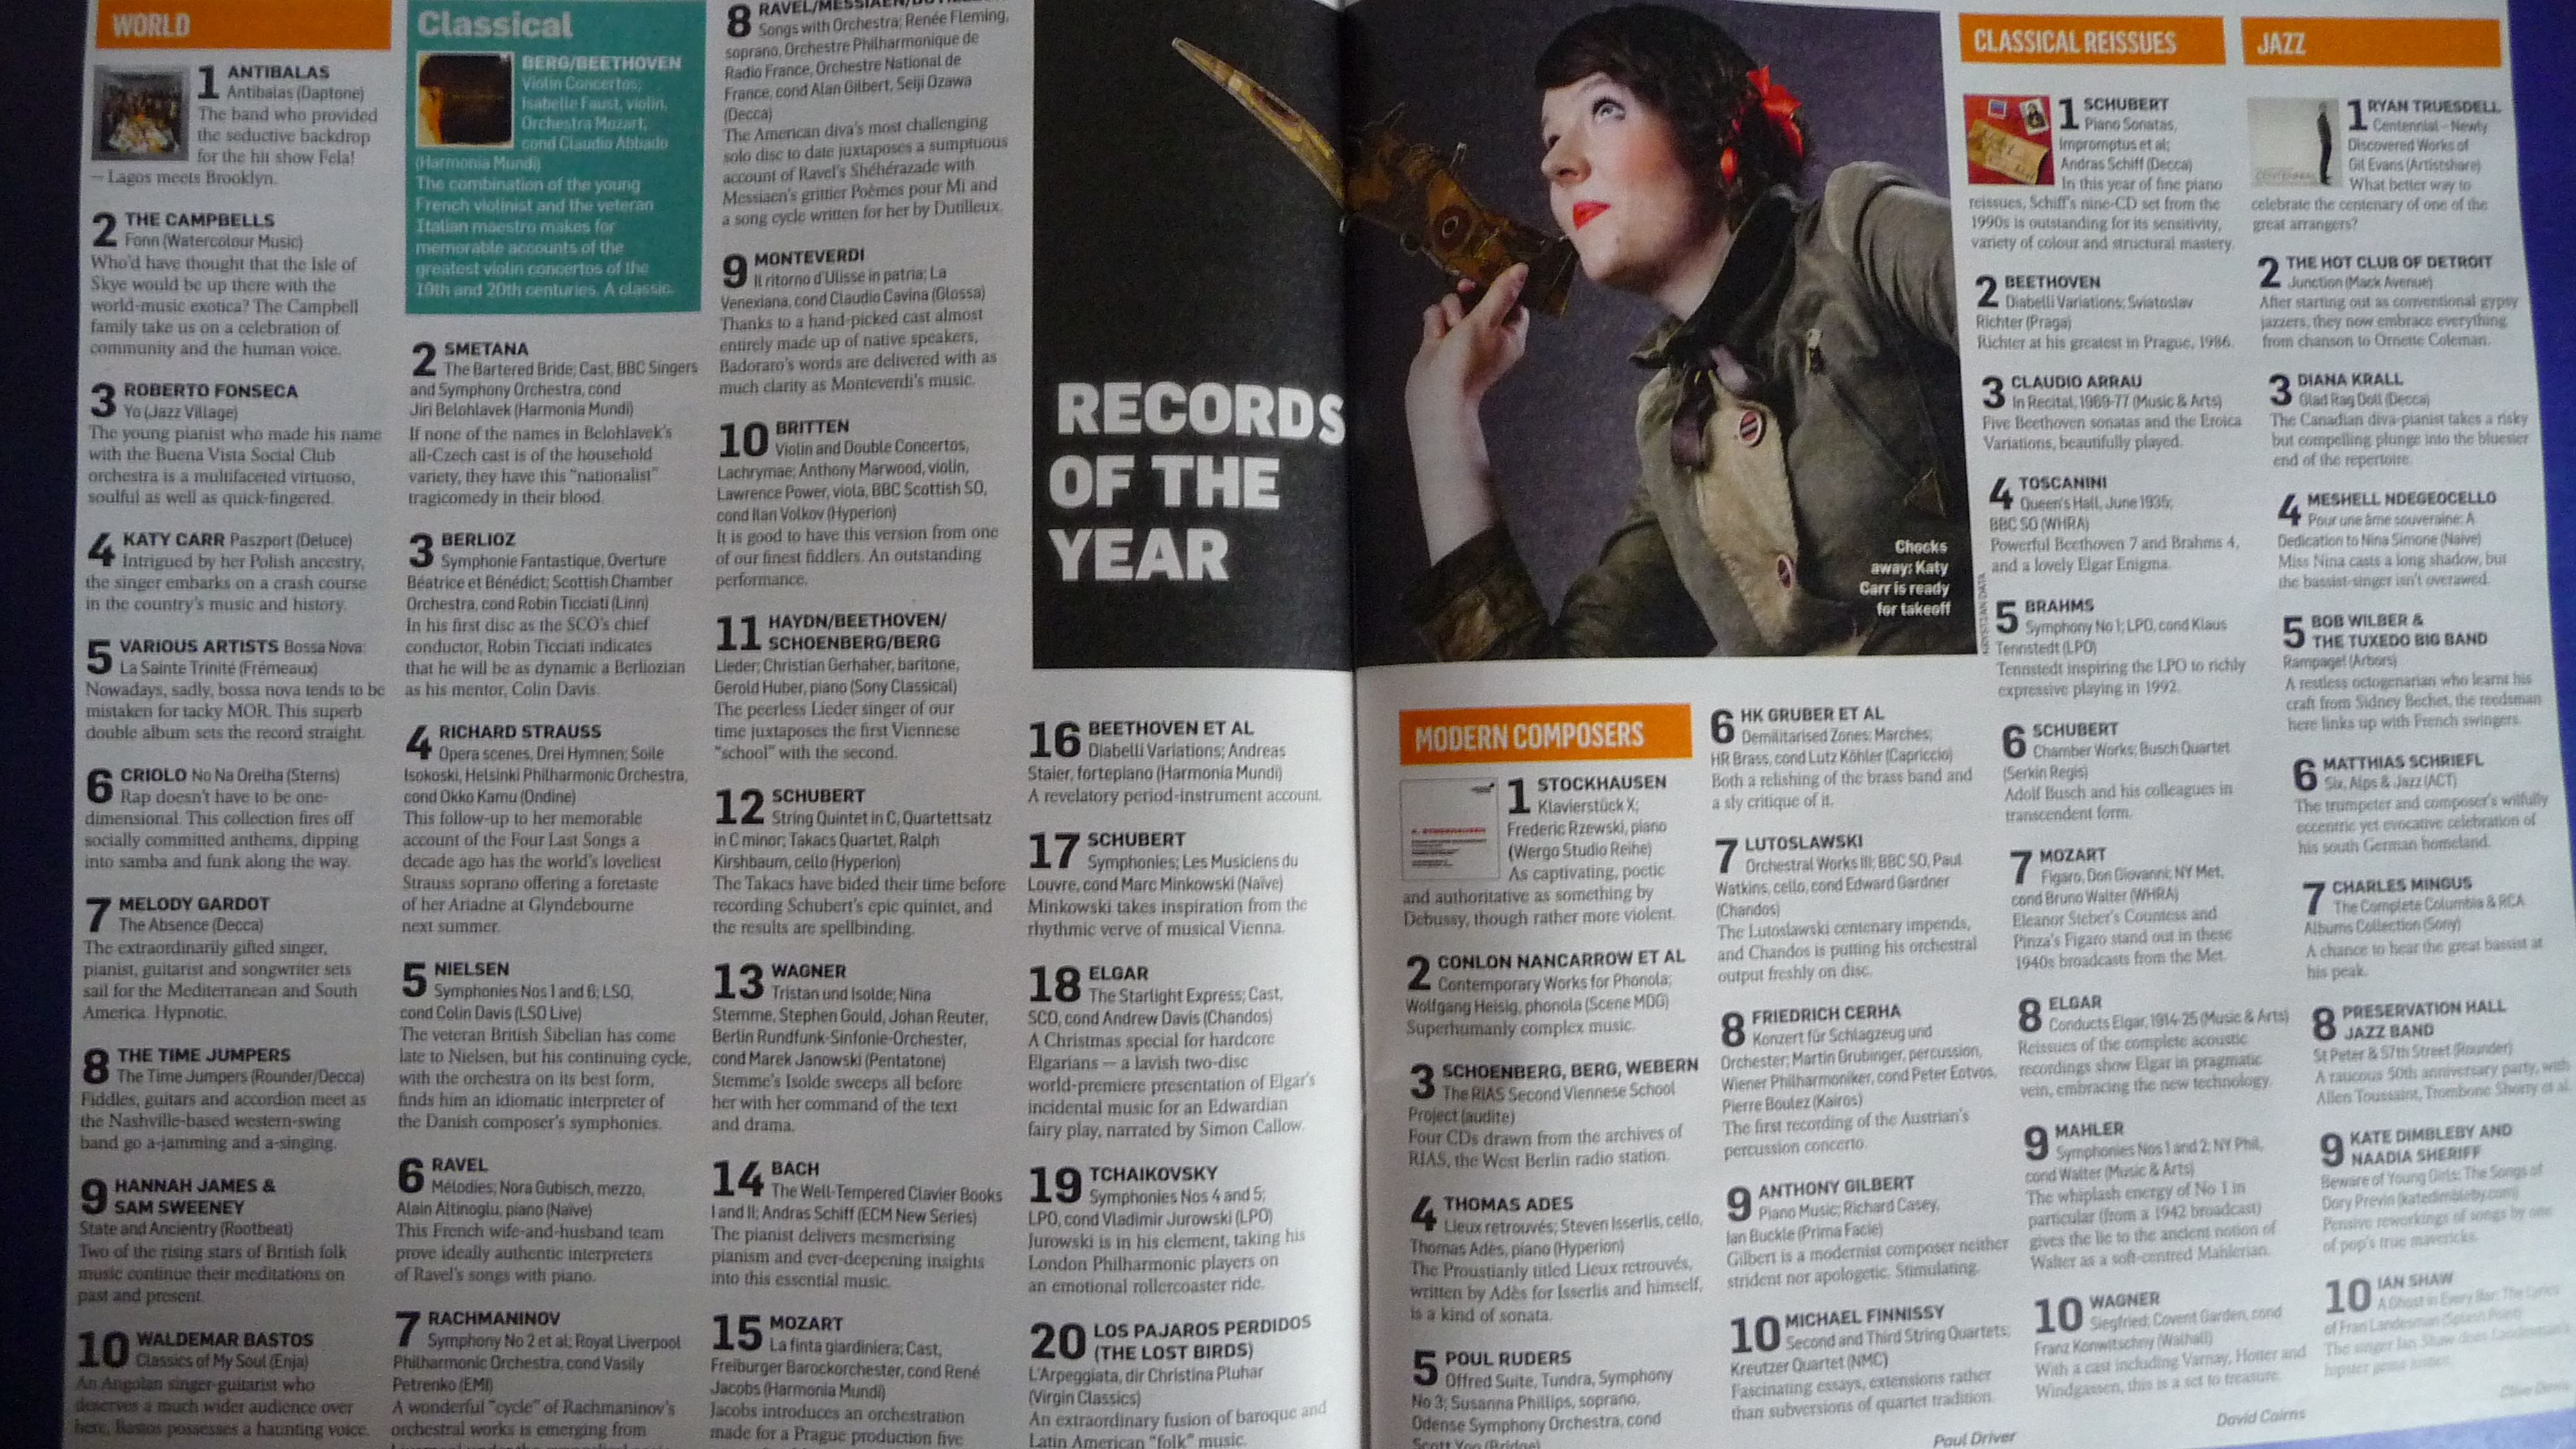 Sunday times best albums 2012